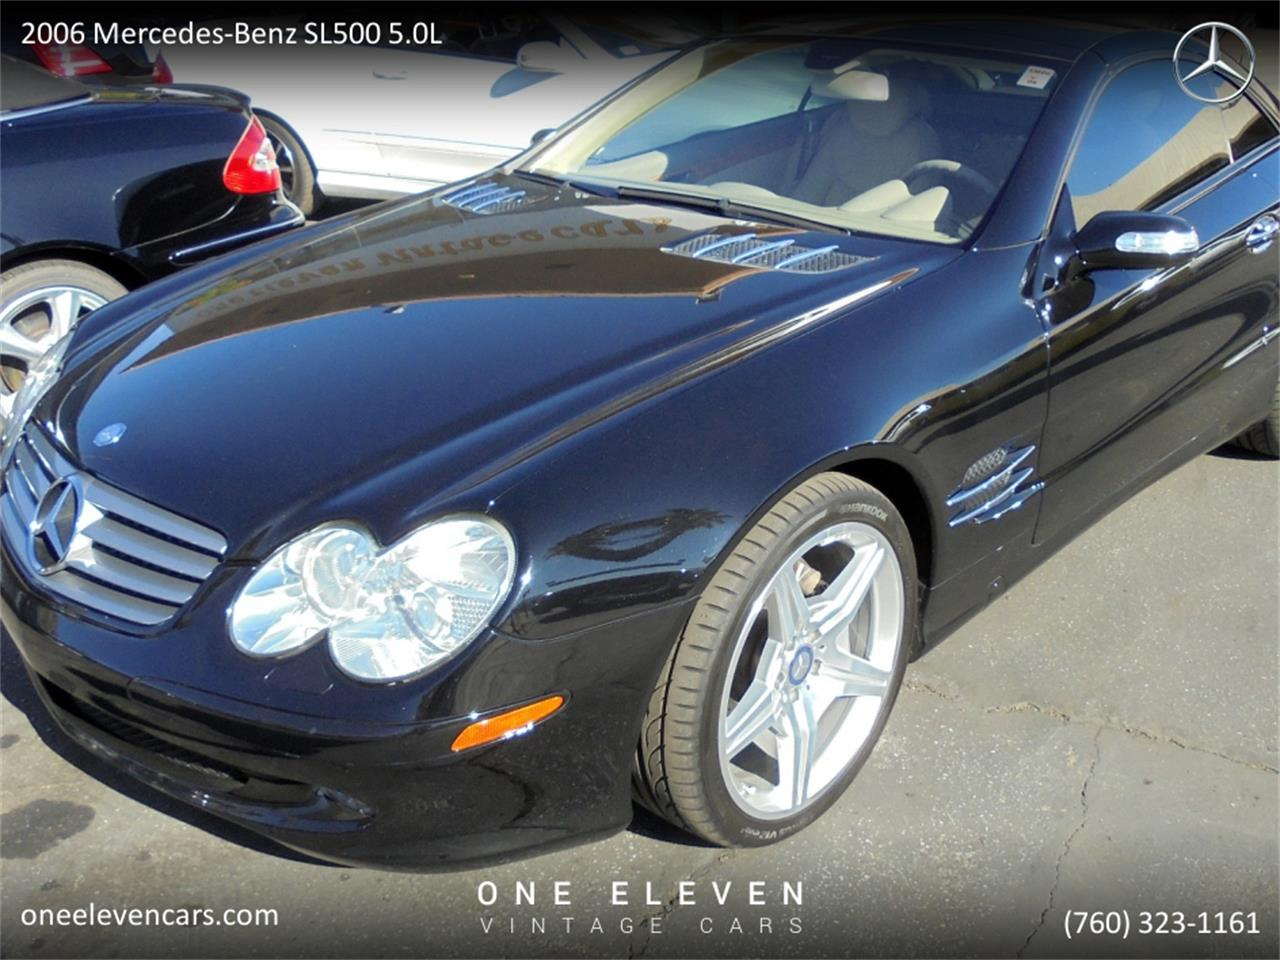 for sale 2006 mercedes-benz sl-class in palm springs, california cars - palm springs, ca at geebo